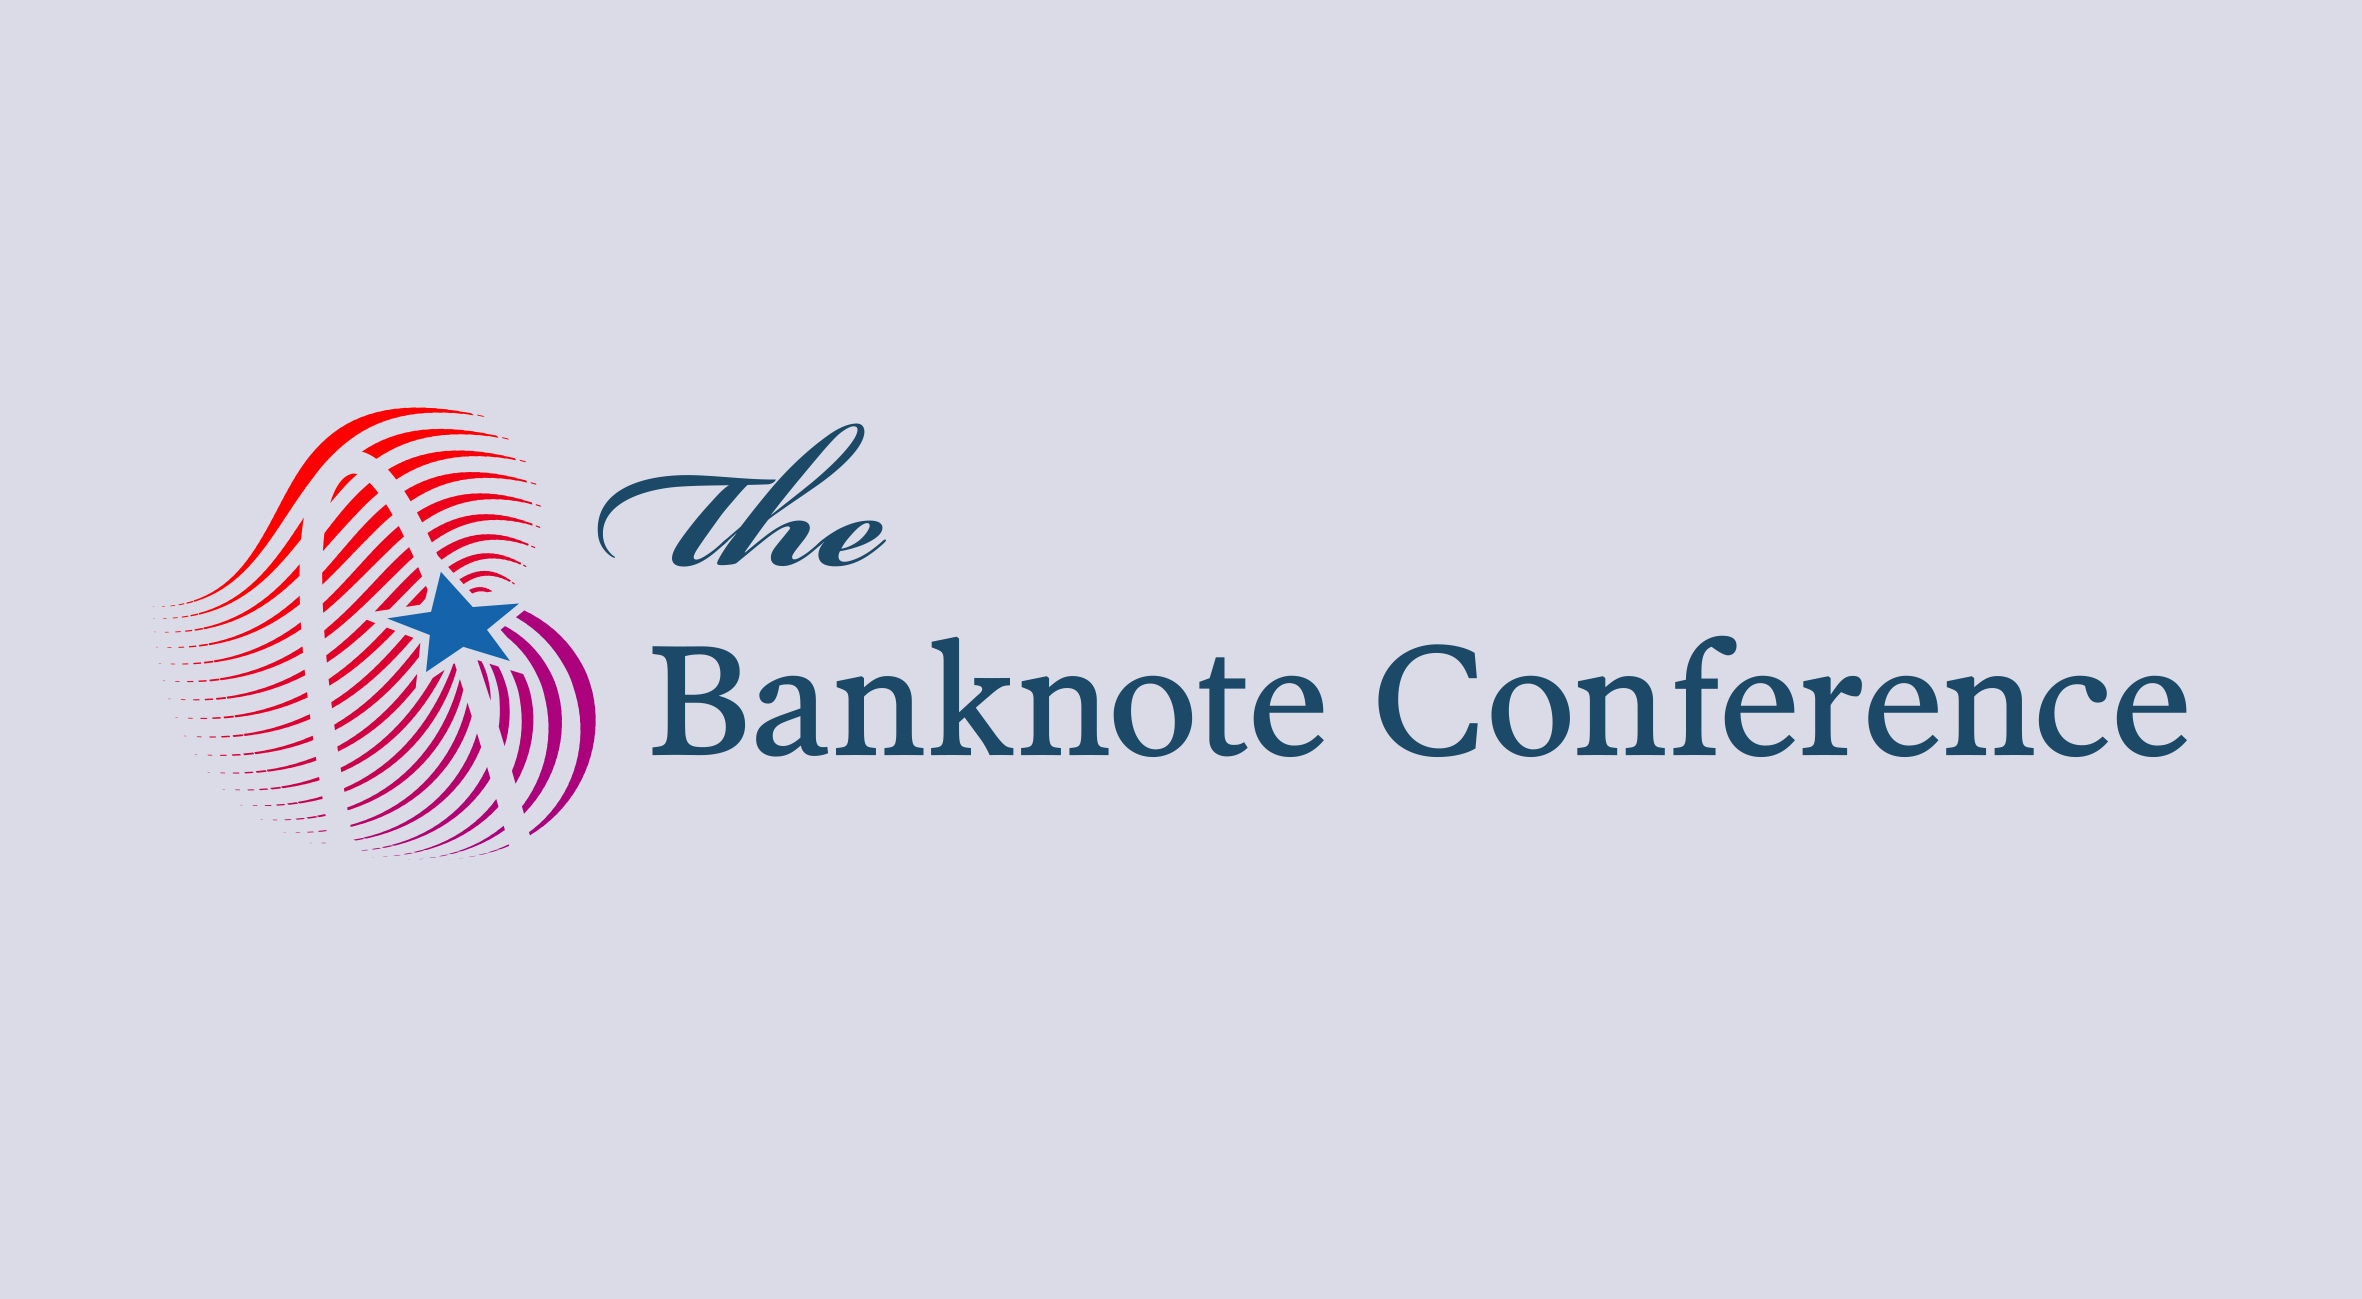 logo_banknote_conference